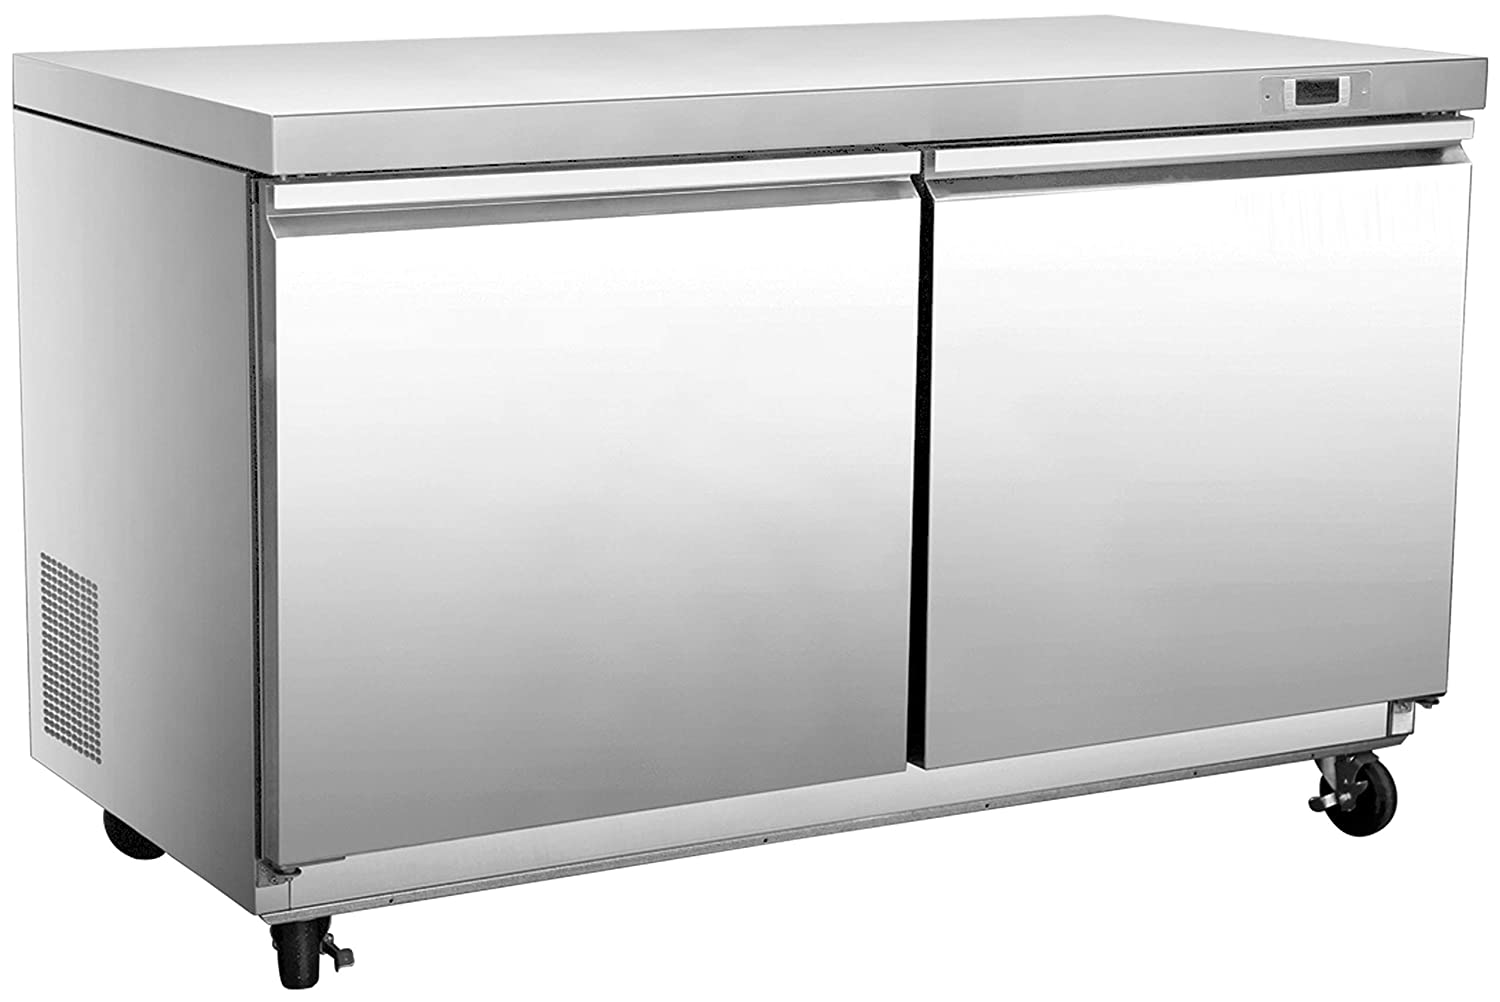 """Chef's Exclusive CE343 Two 2 Double Solid Door Commercial Heavy Duty Stainless Steel Undercounter Refrigerator Cooler 11.1 Cubic Feet with Environmentally Friendly Refrigerant, 48"""" Wide, Silver"""